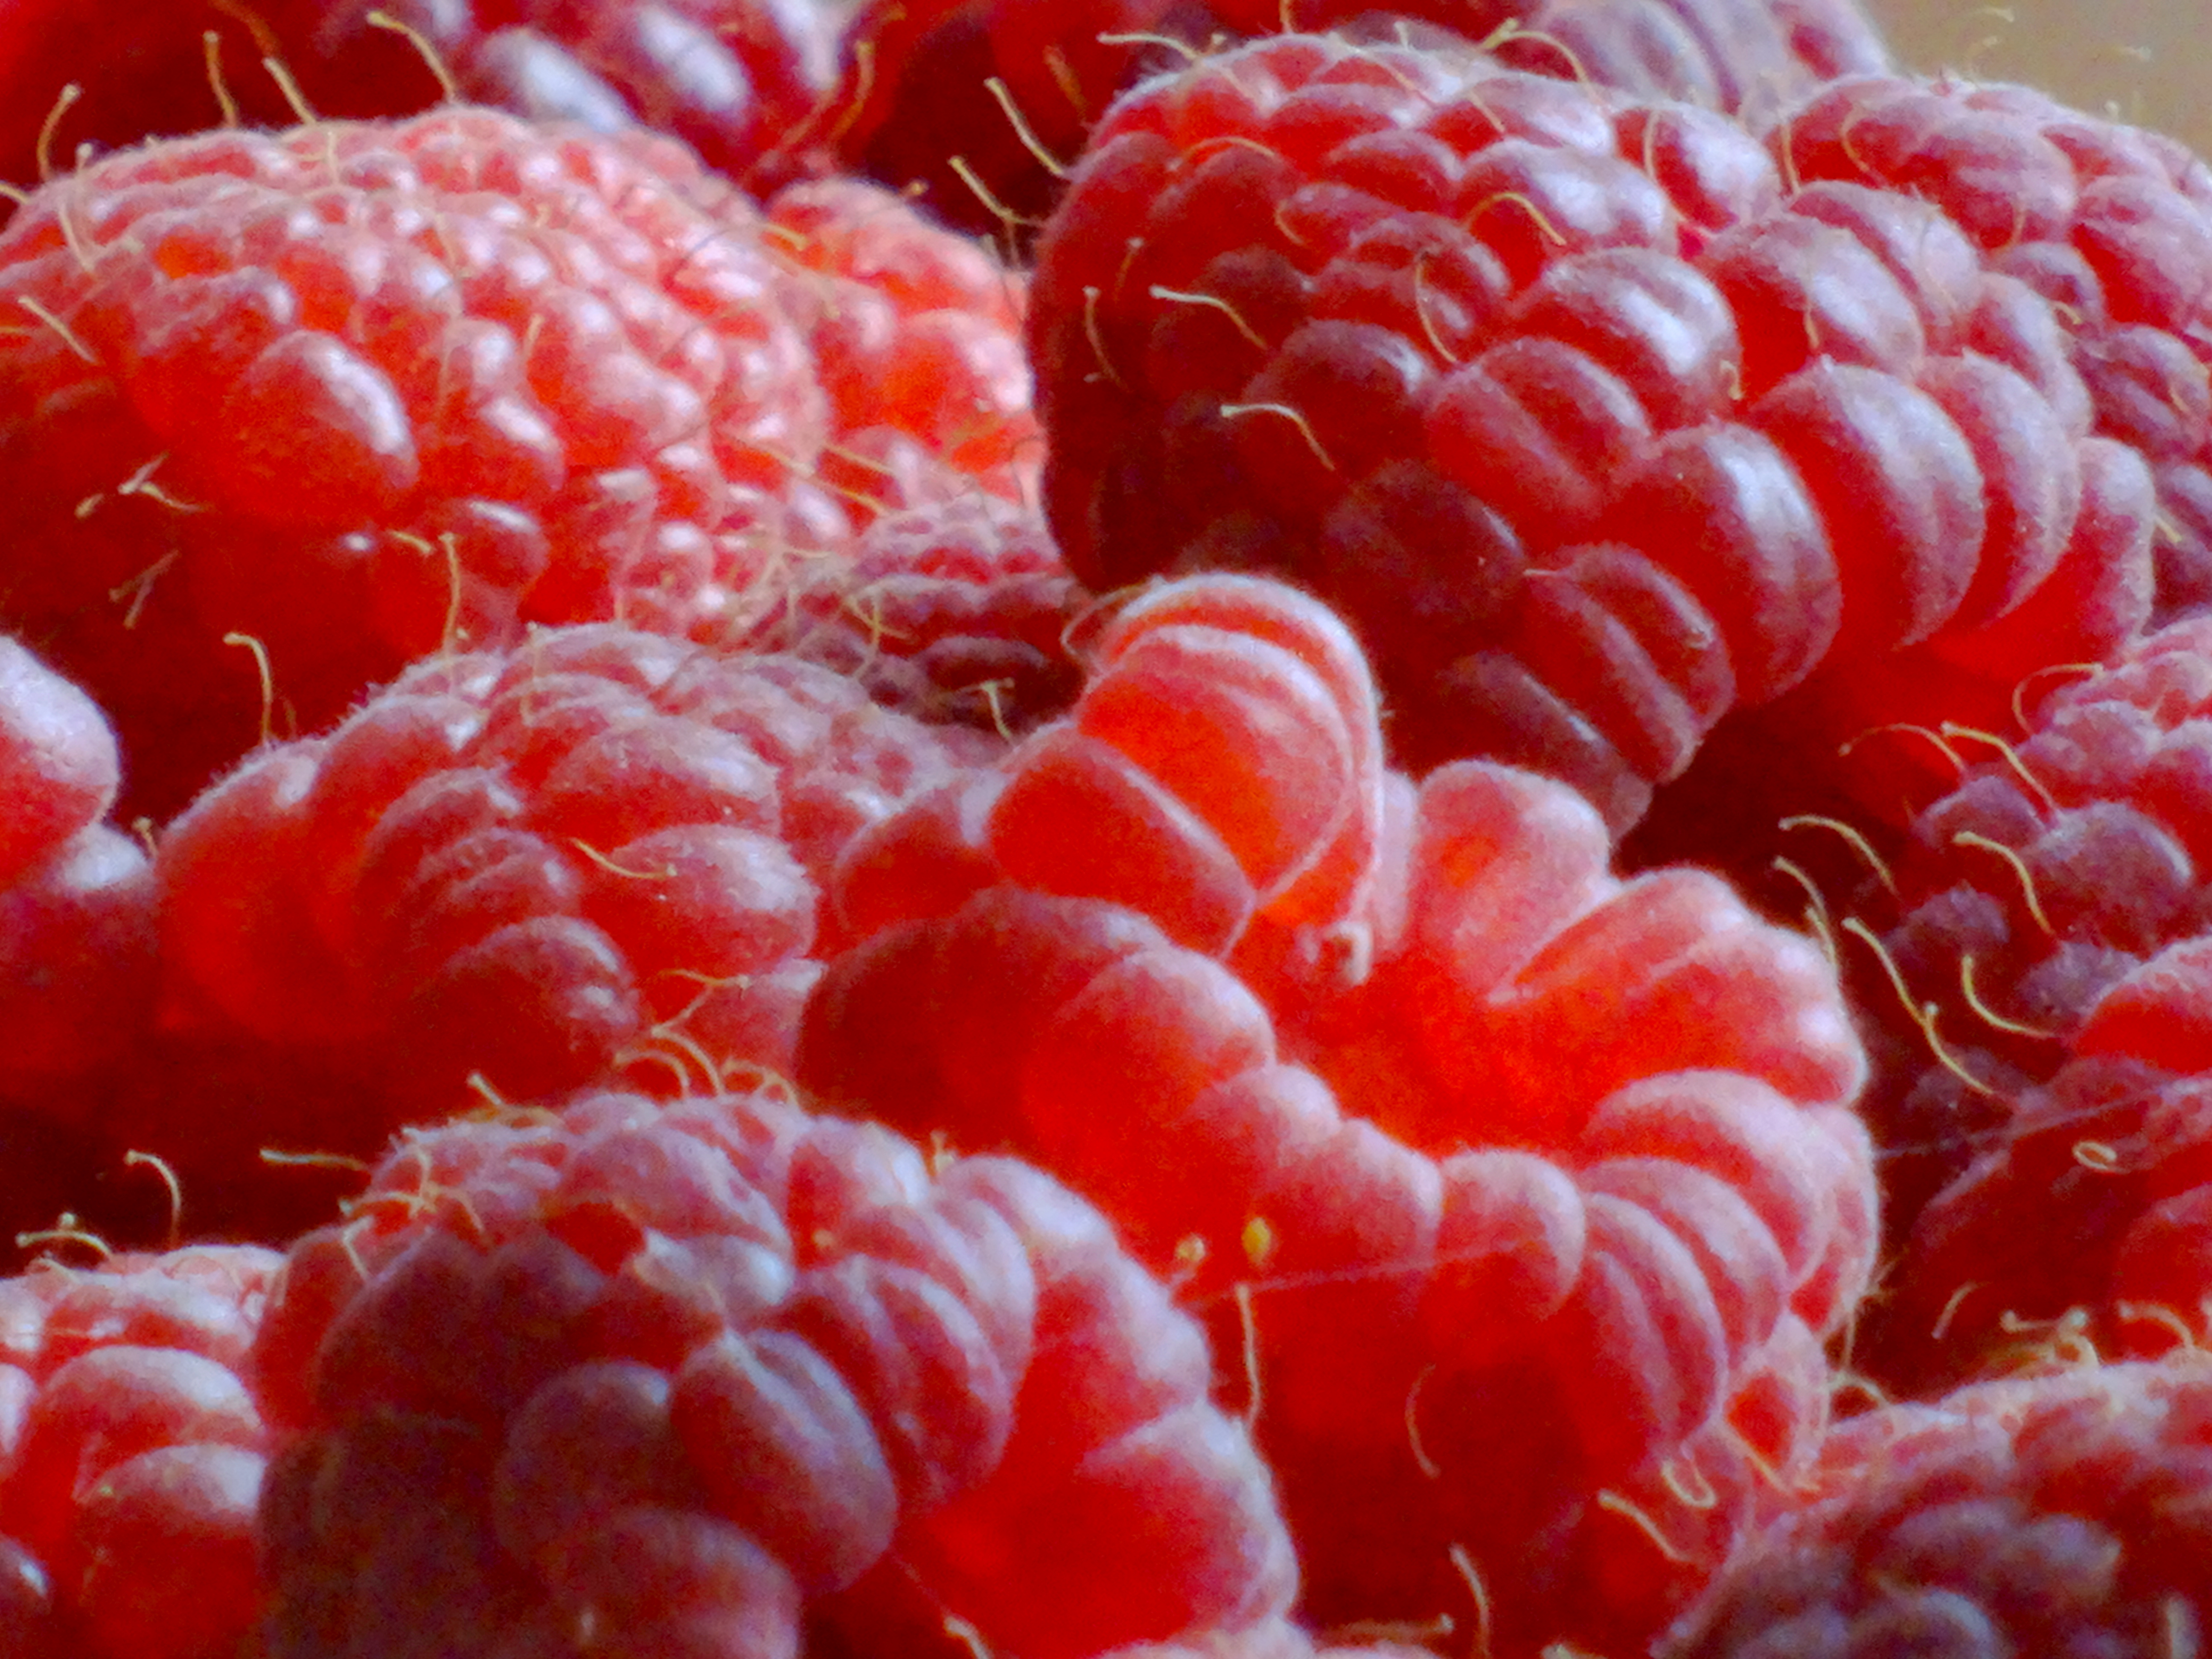 Pulpeuses framboises fruits rouges